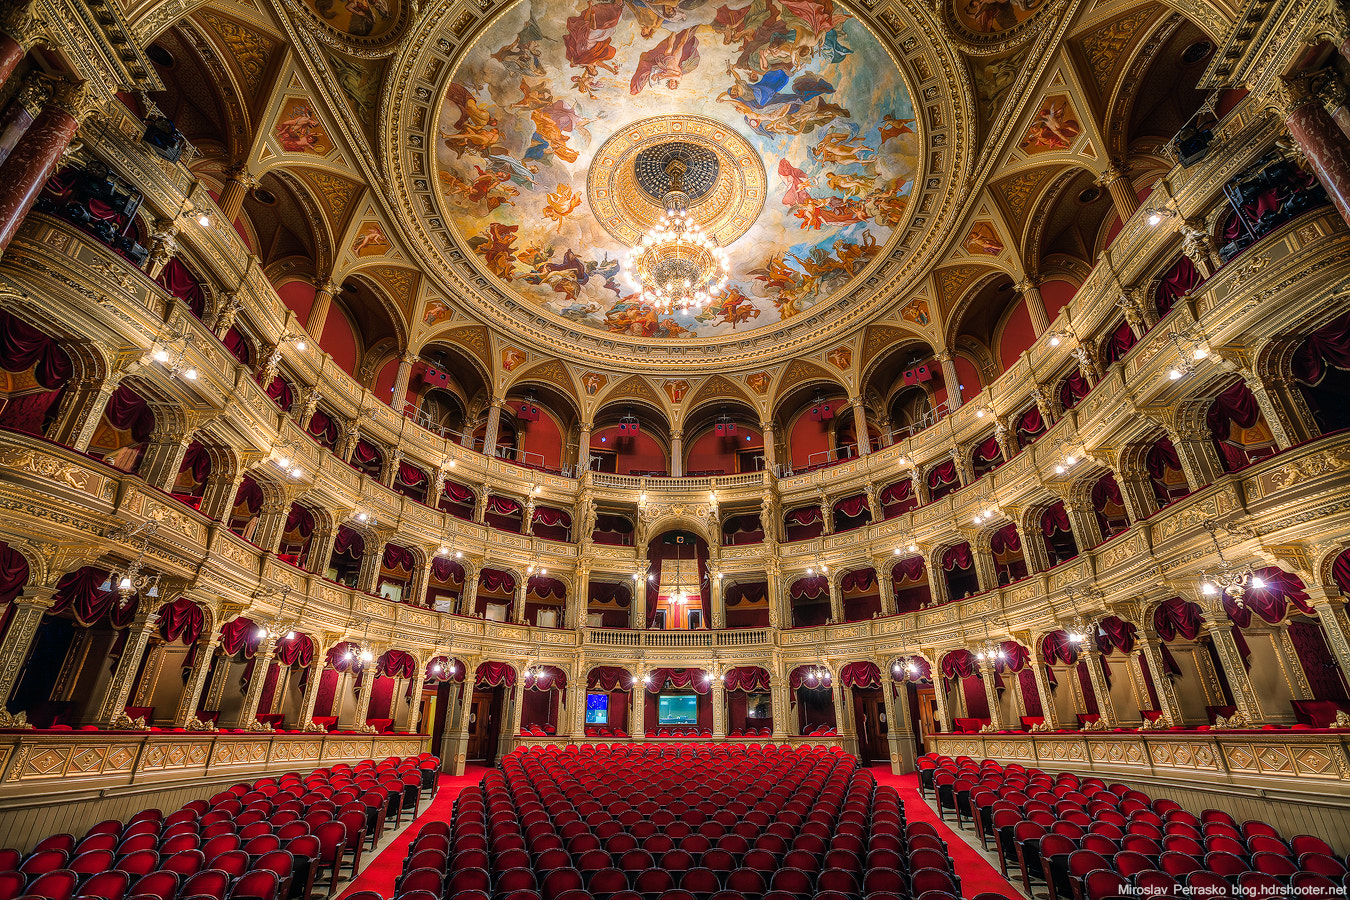 Photograph On the opera stage by Miroslav Petrasko on 500px